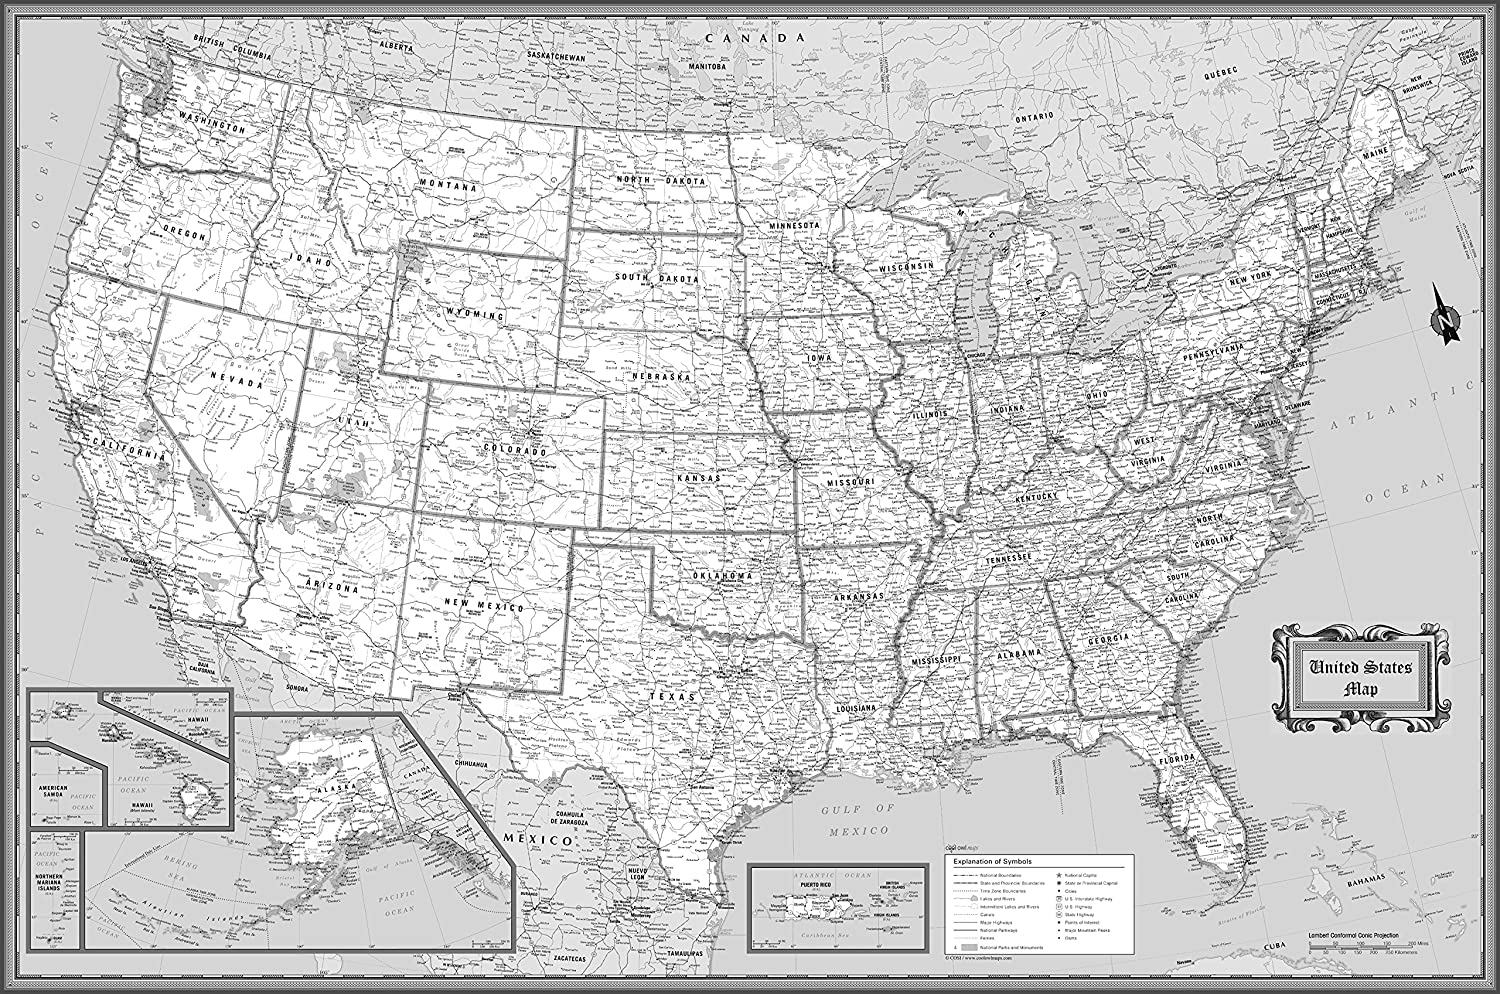 Amazon.com : CoolOwlMaps United States Wall Map Black ...